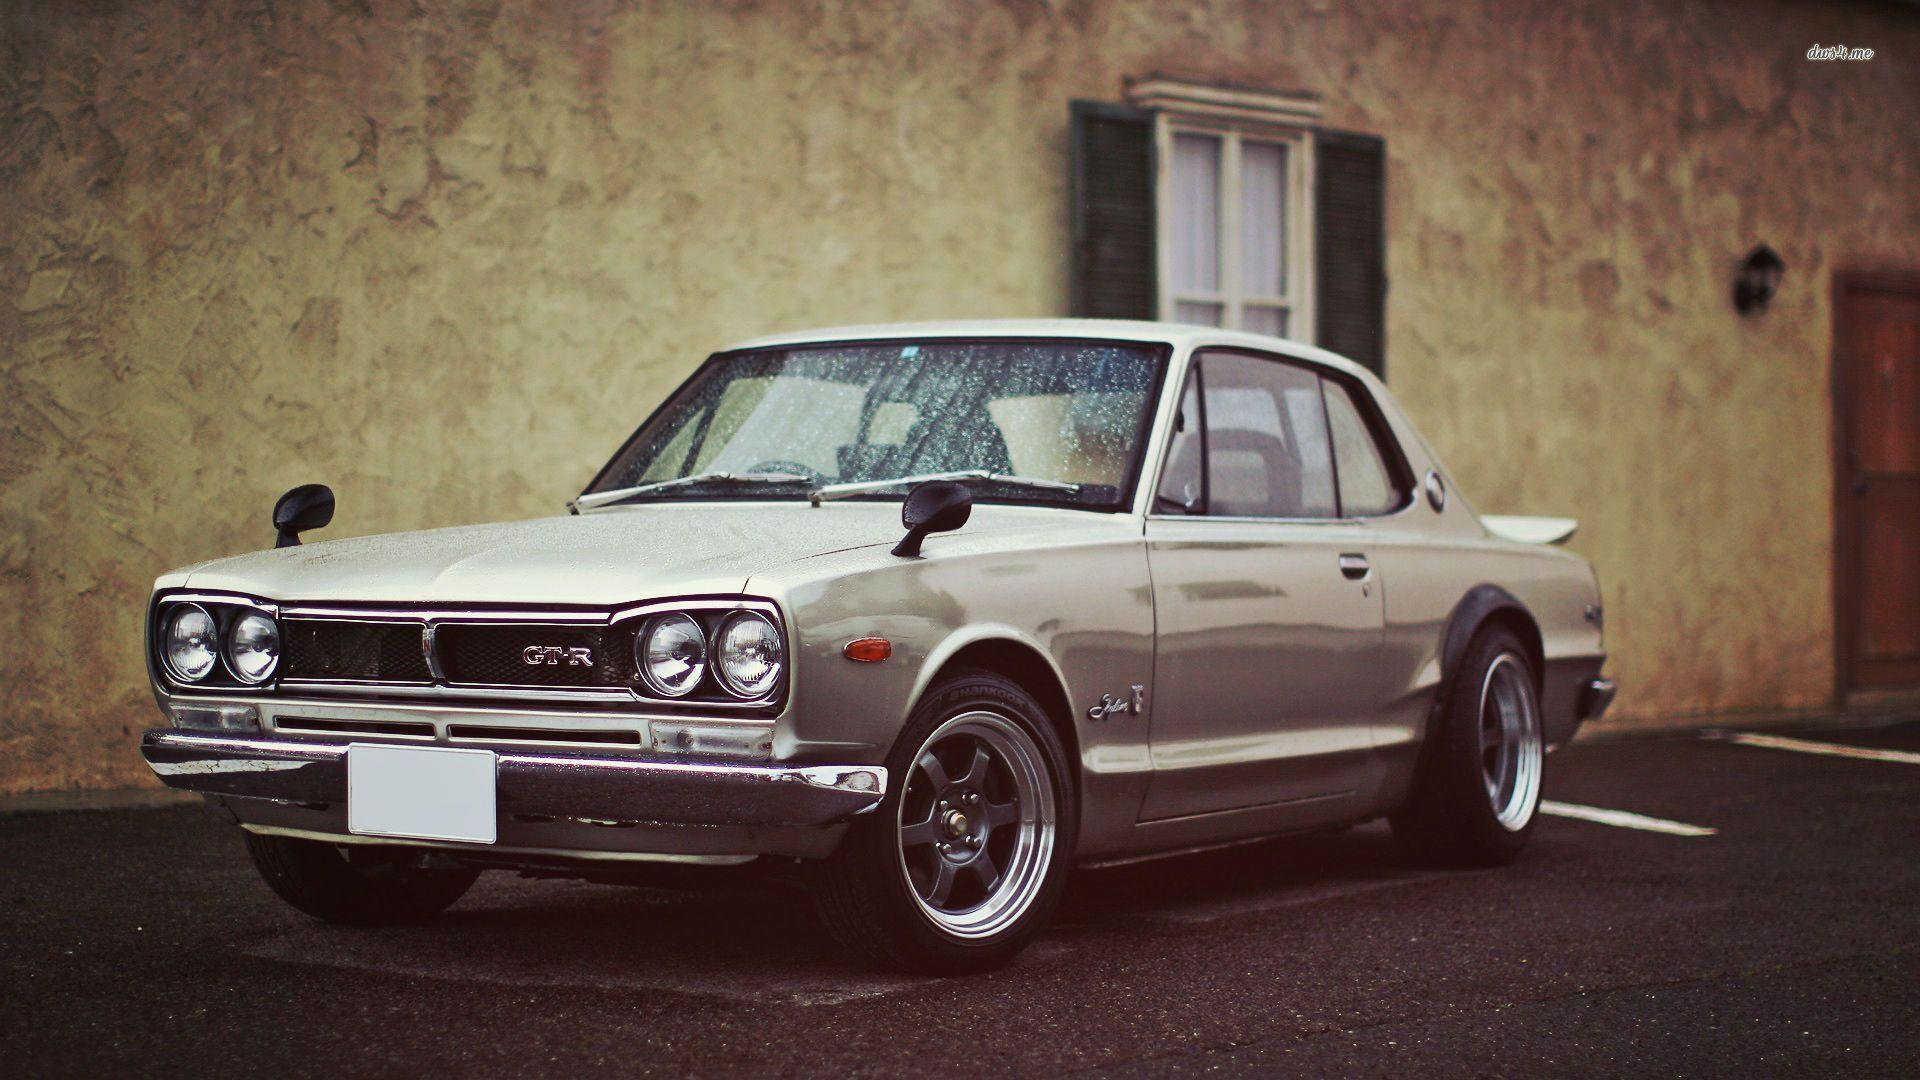 1972 Nissan Skyline wallpapers